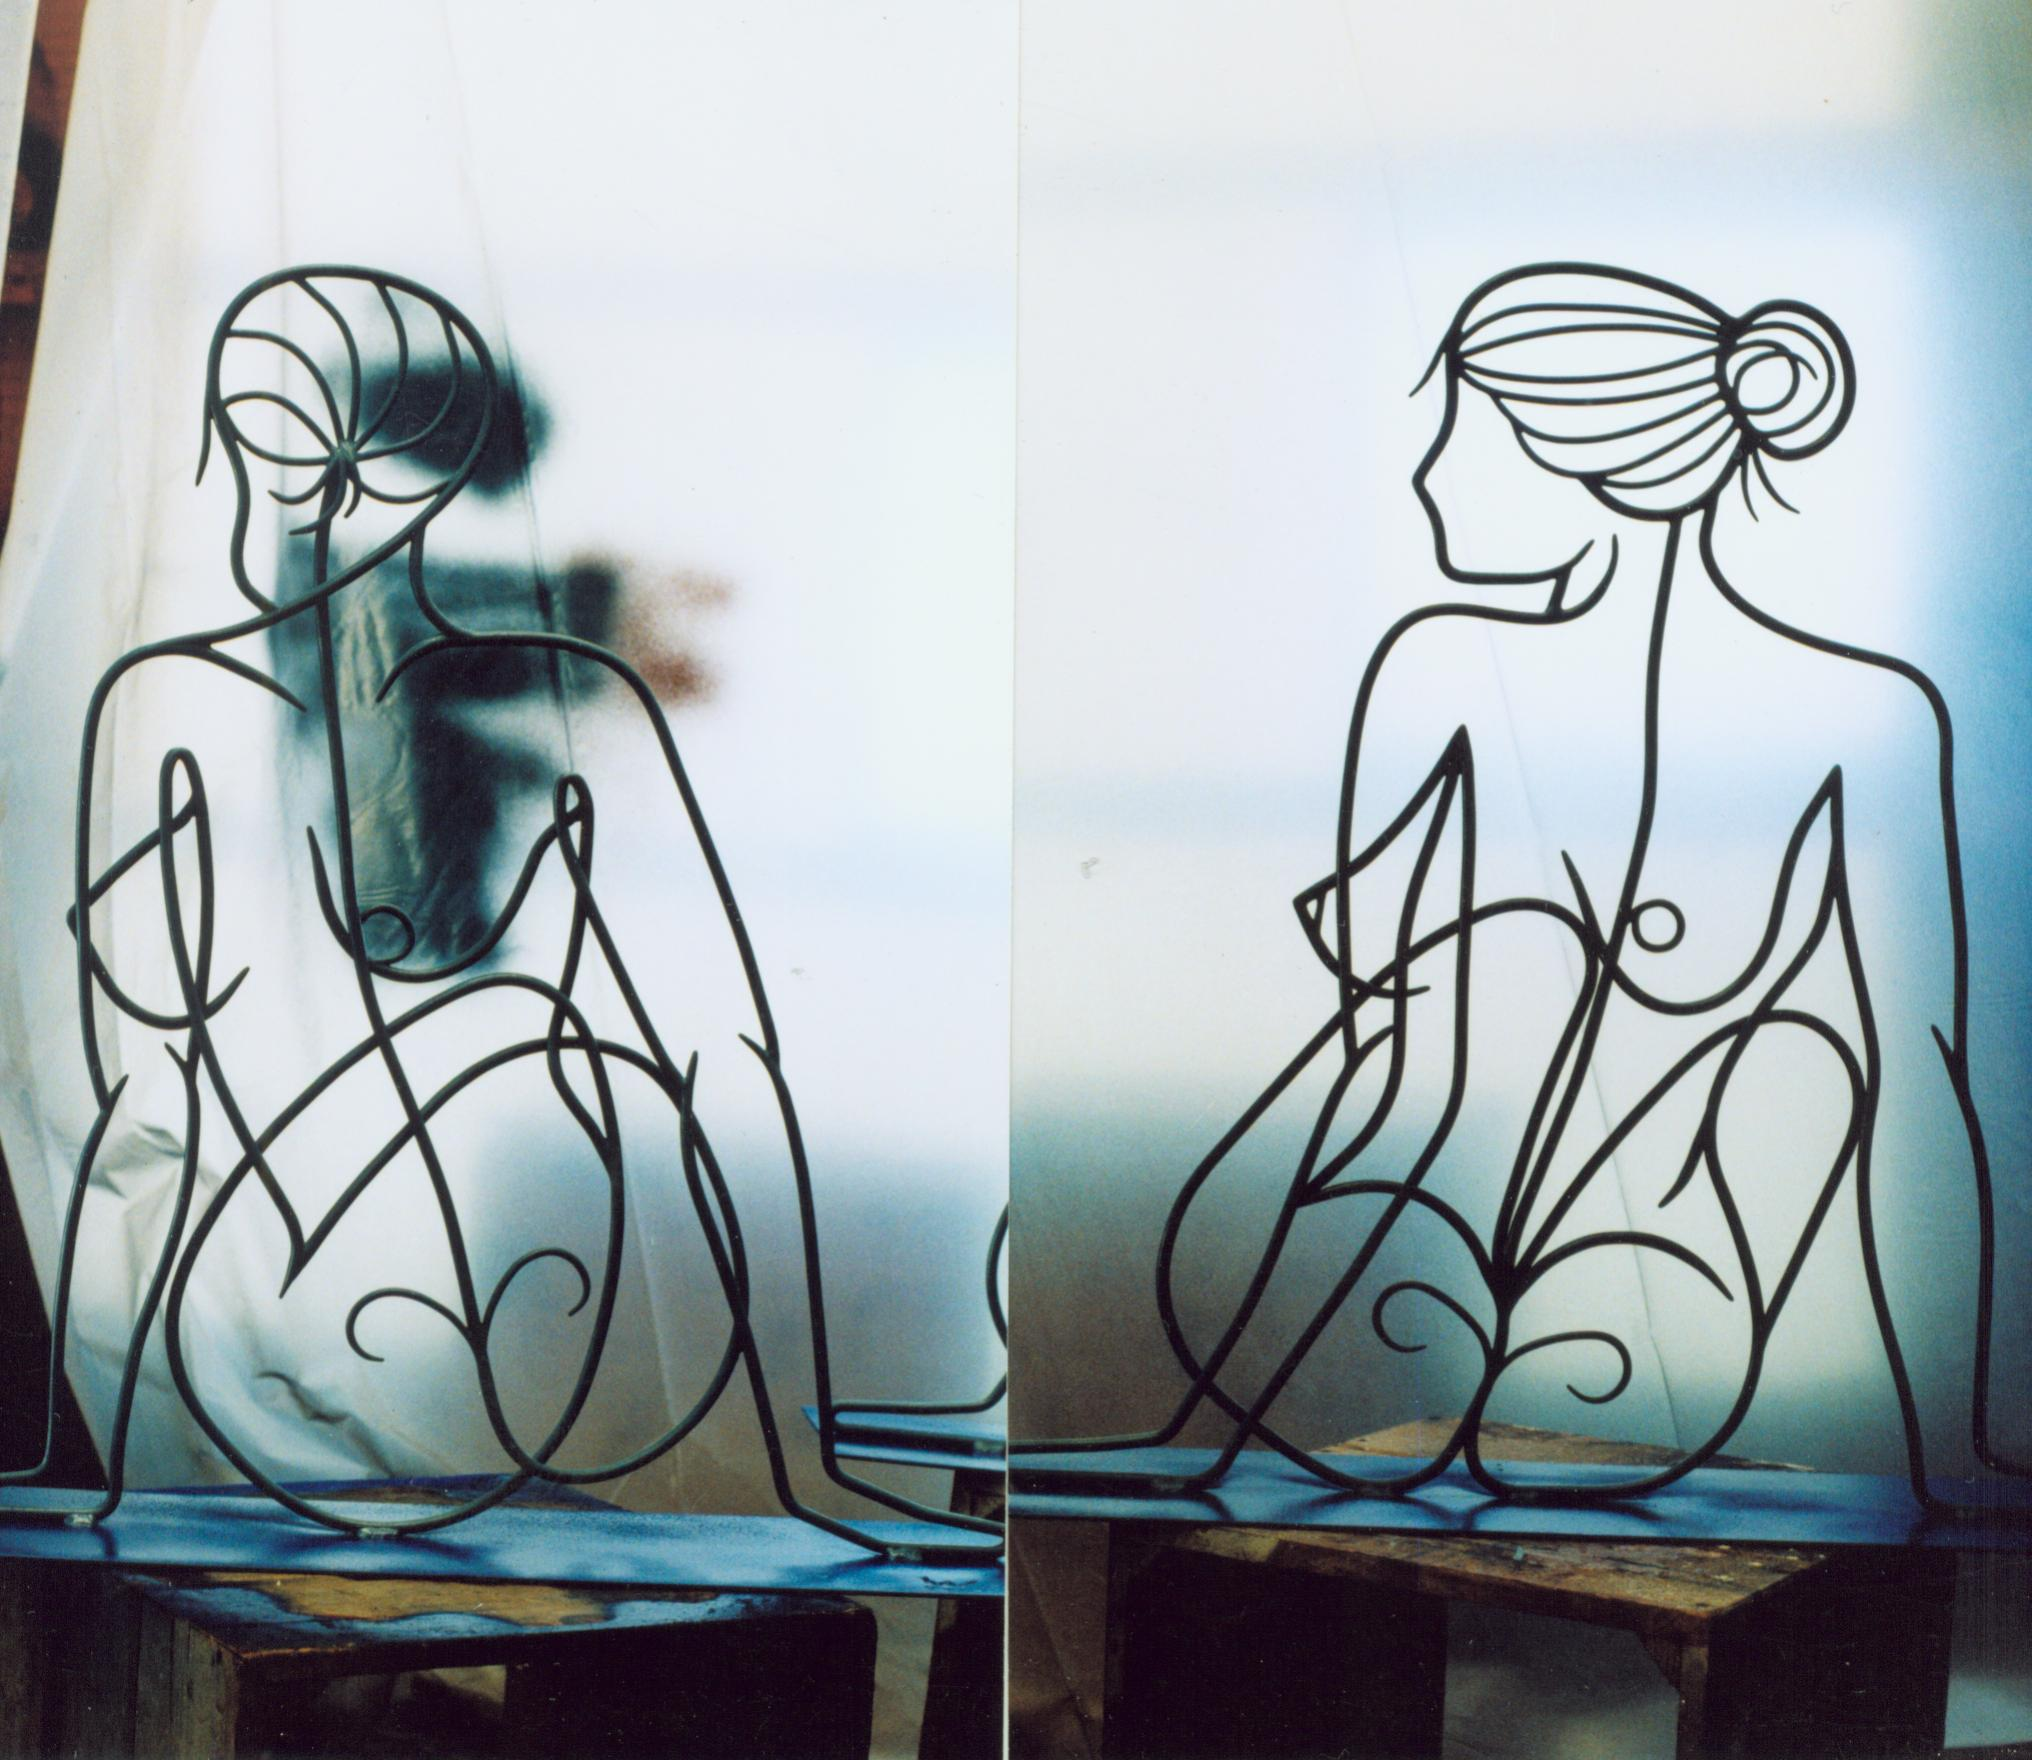 Nicole-2 backviews, paint booth